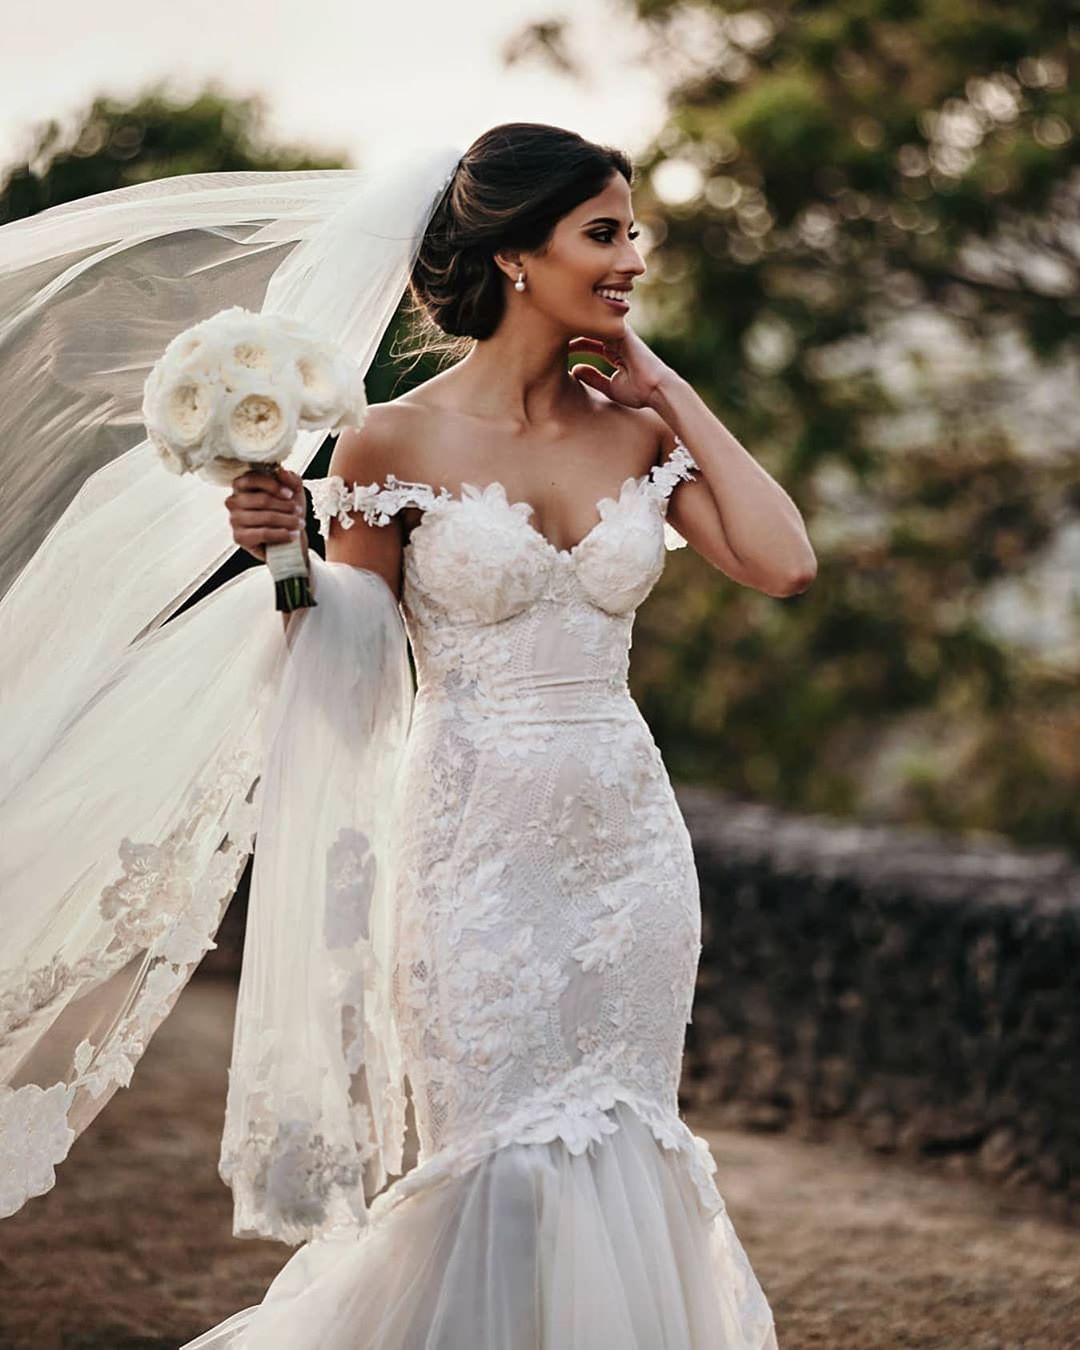 Galia Lahav On Instagram Glbride Of The Day Ariellemoses Wearing The Tony Gown And A Beauti Wedding Dresses Galia Lahav Wedding Dress Tulle Wedding Gown